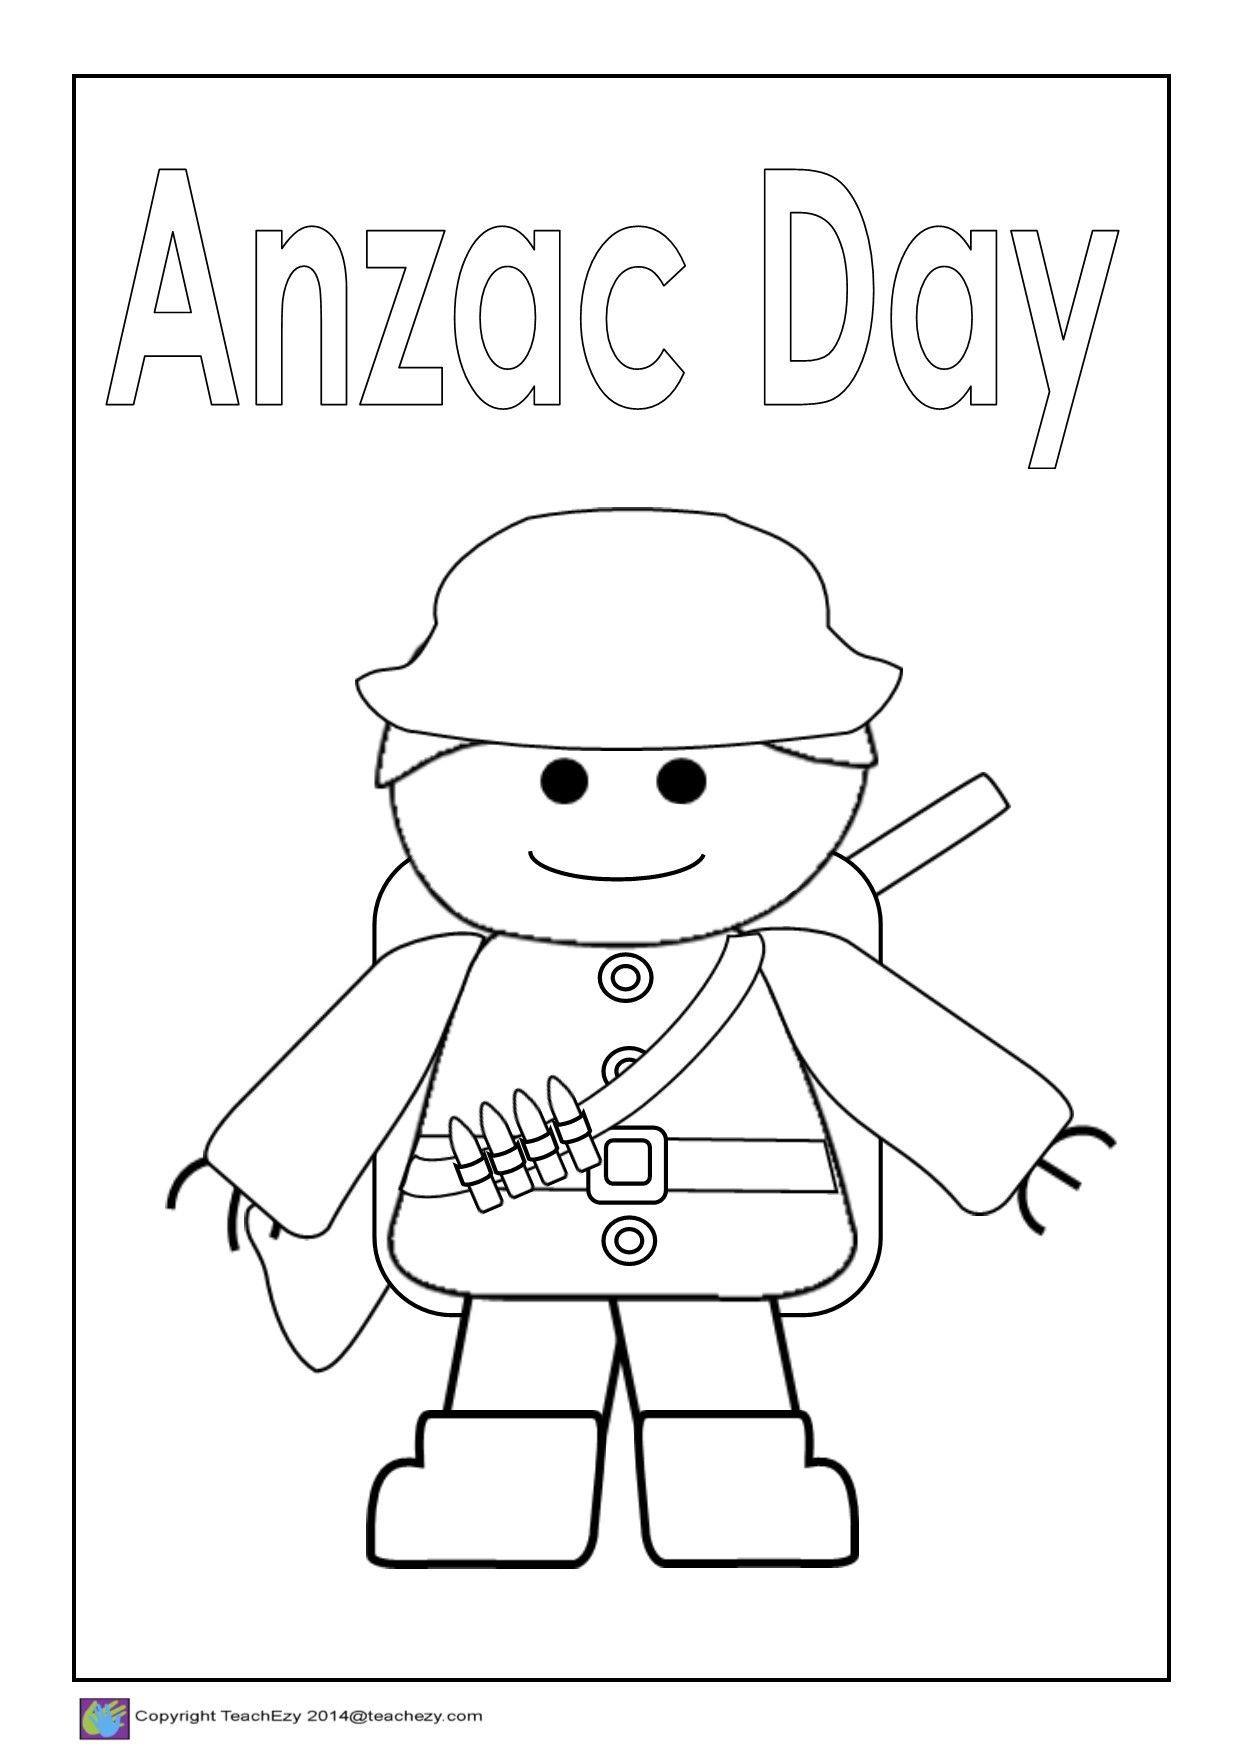 Anzac Day Colouring Printables Anzac Day Anzac Soldiers Veterans Day Coloring Page [ 1754 x 1240 Pixel ]